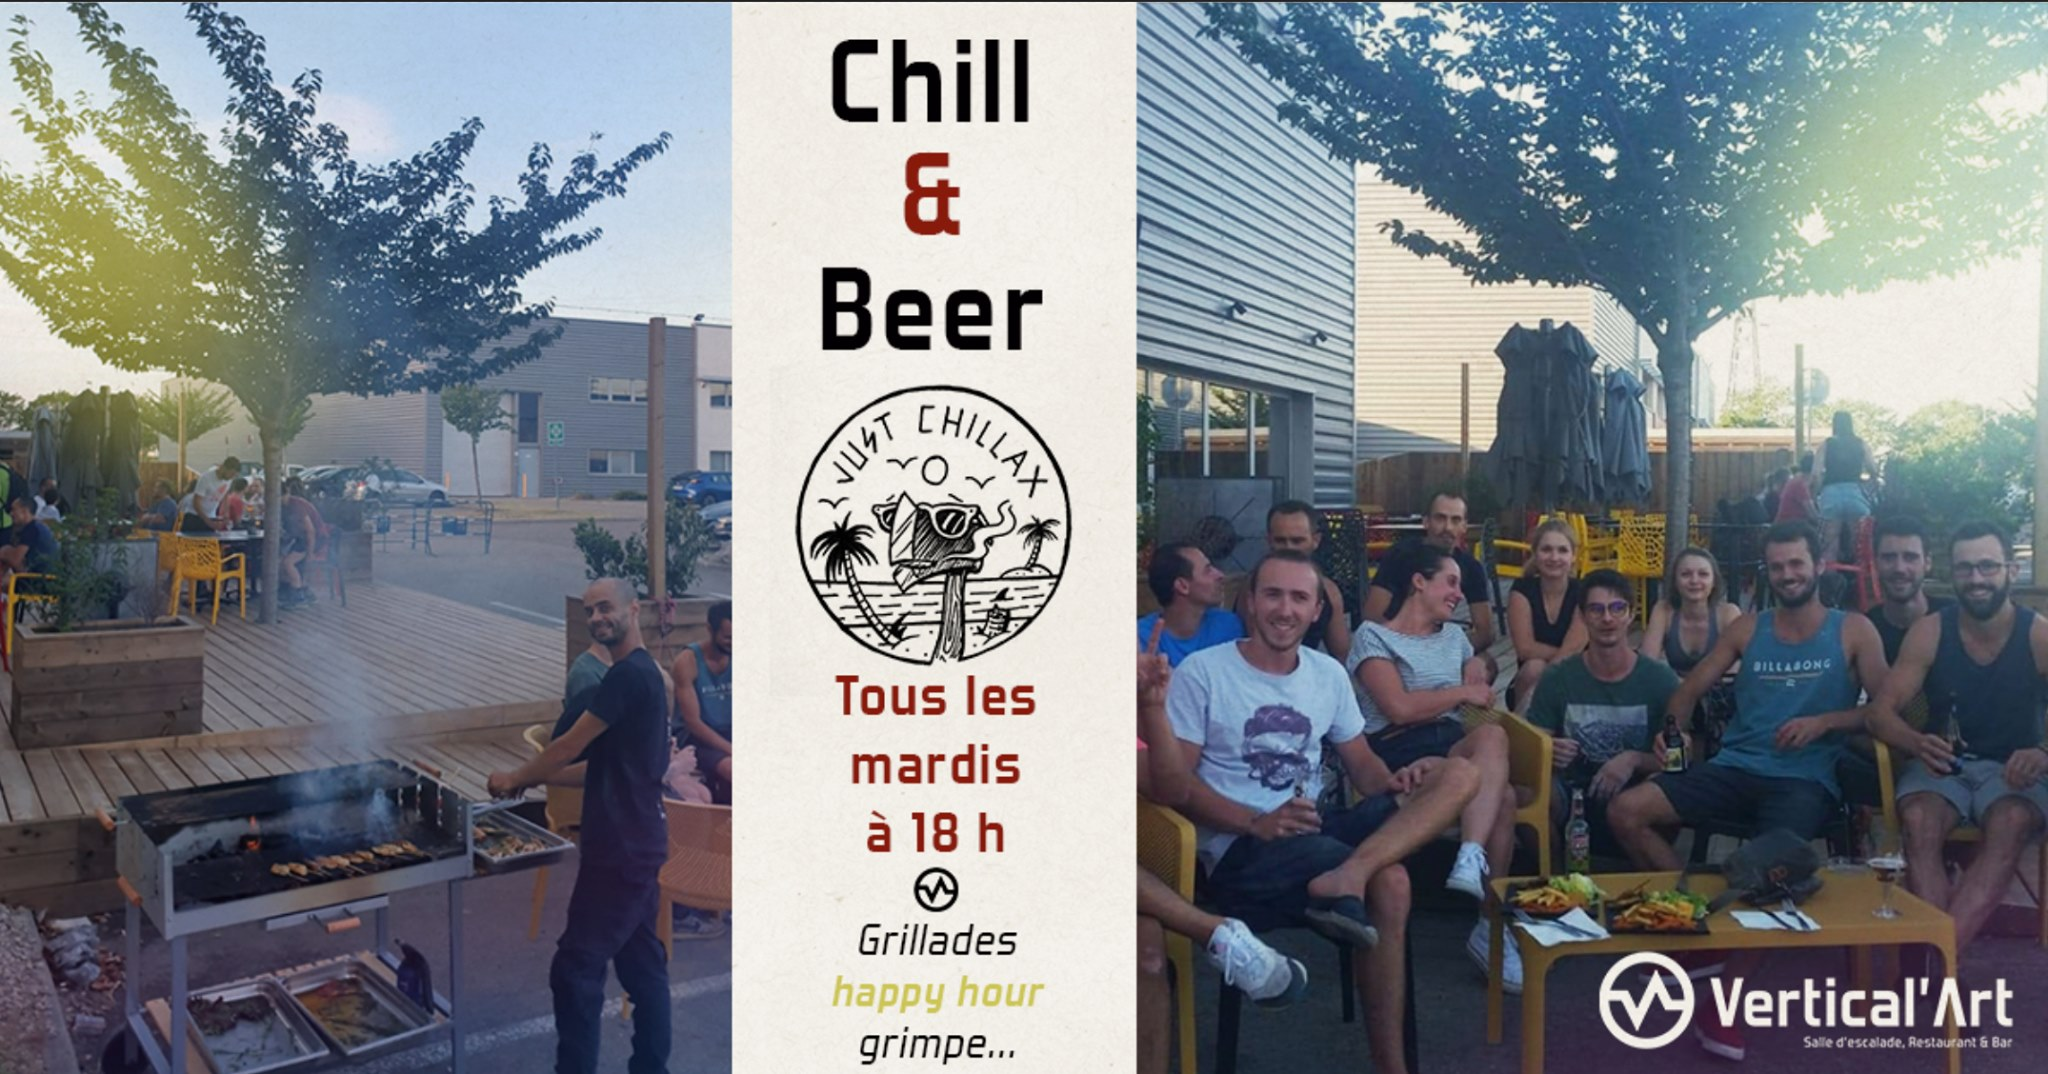 chill and beer - barbecue - convivial en terrasse et DJ set - salle d'escalade de bloc Vertical'Art lyon restaurant et bar